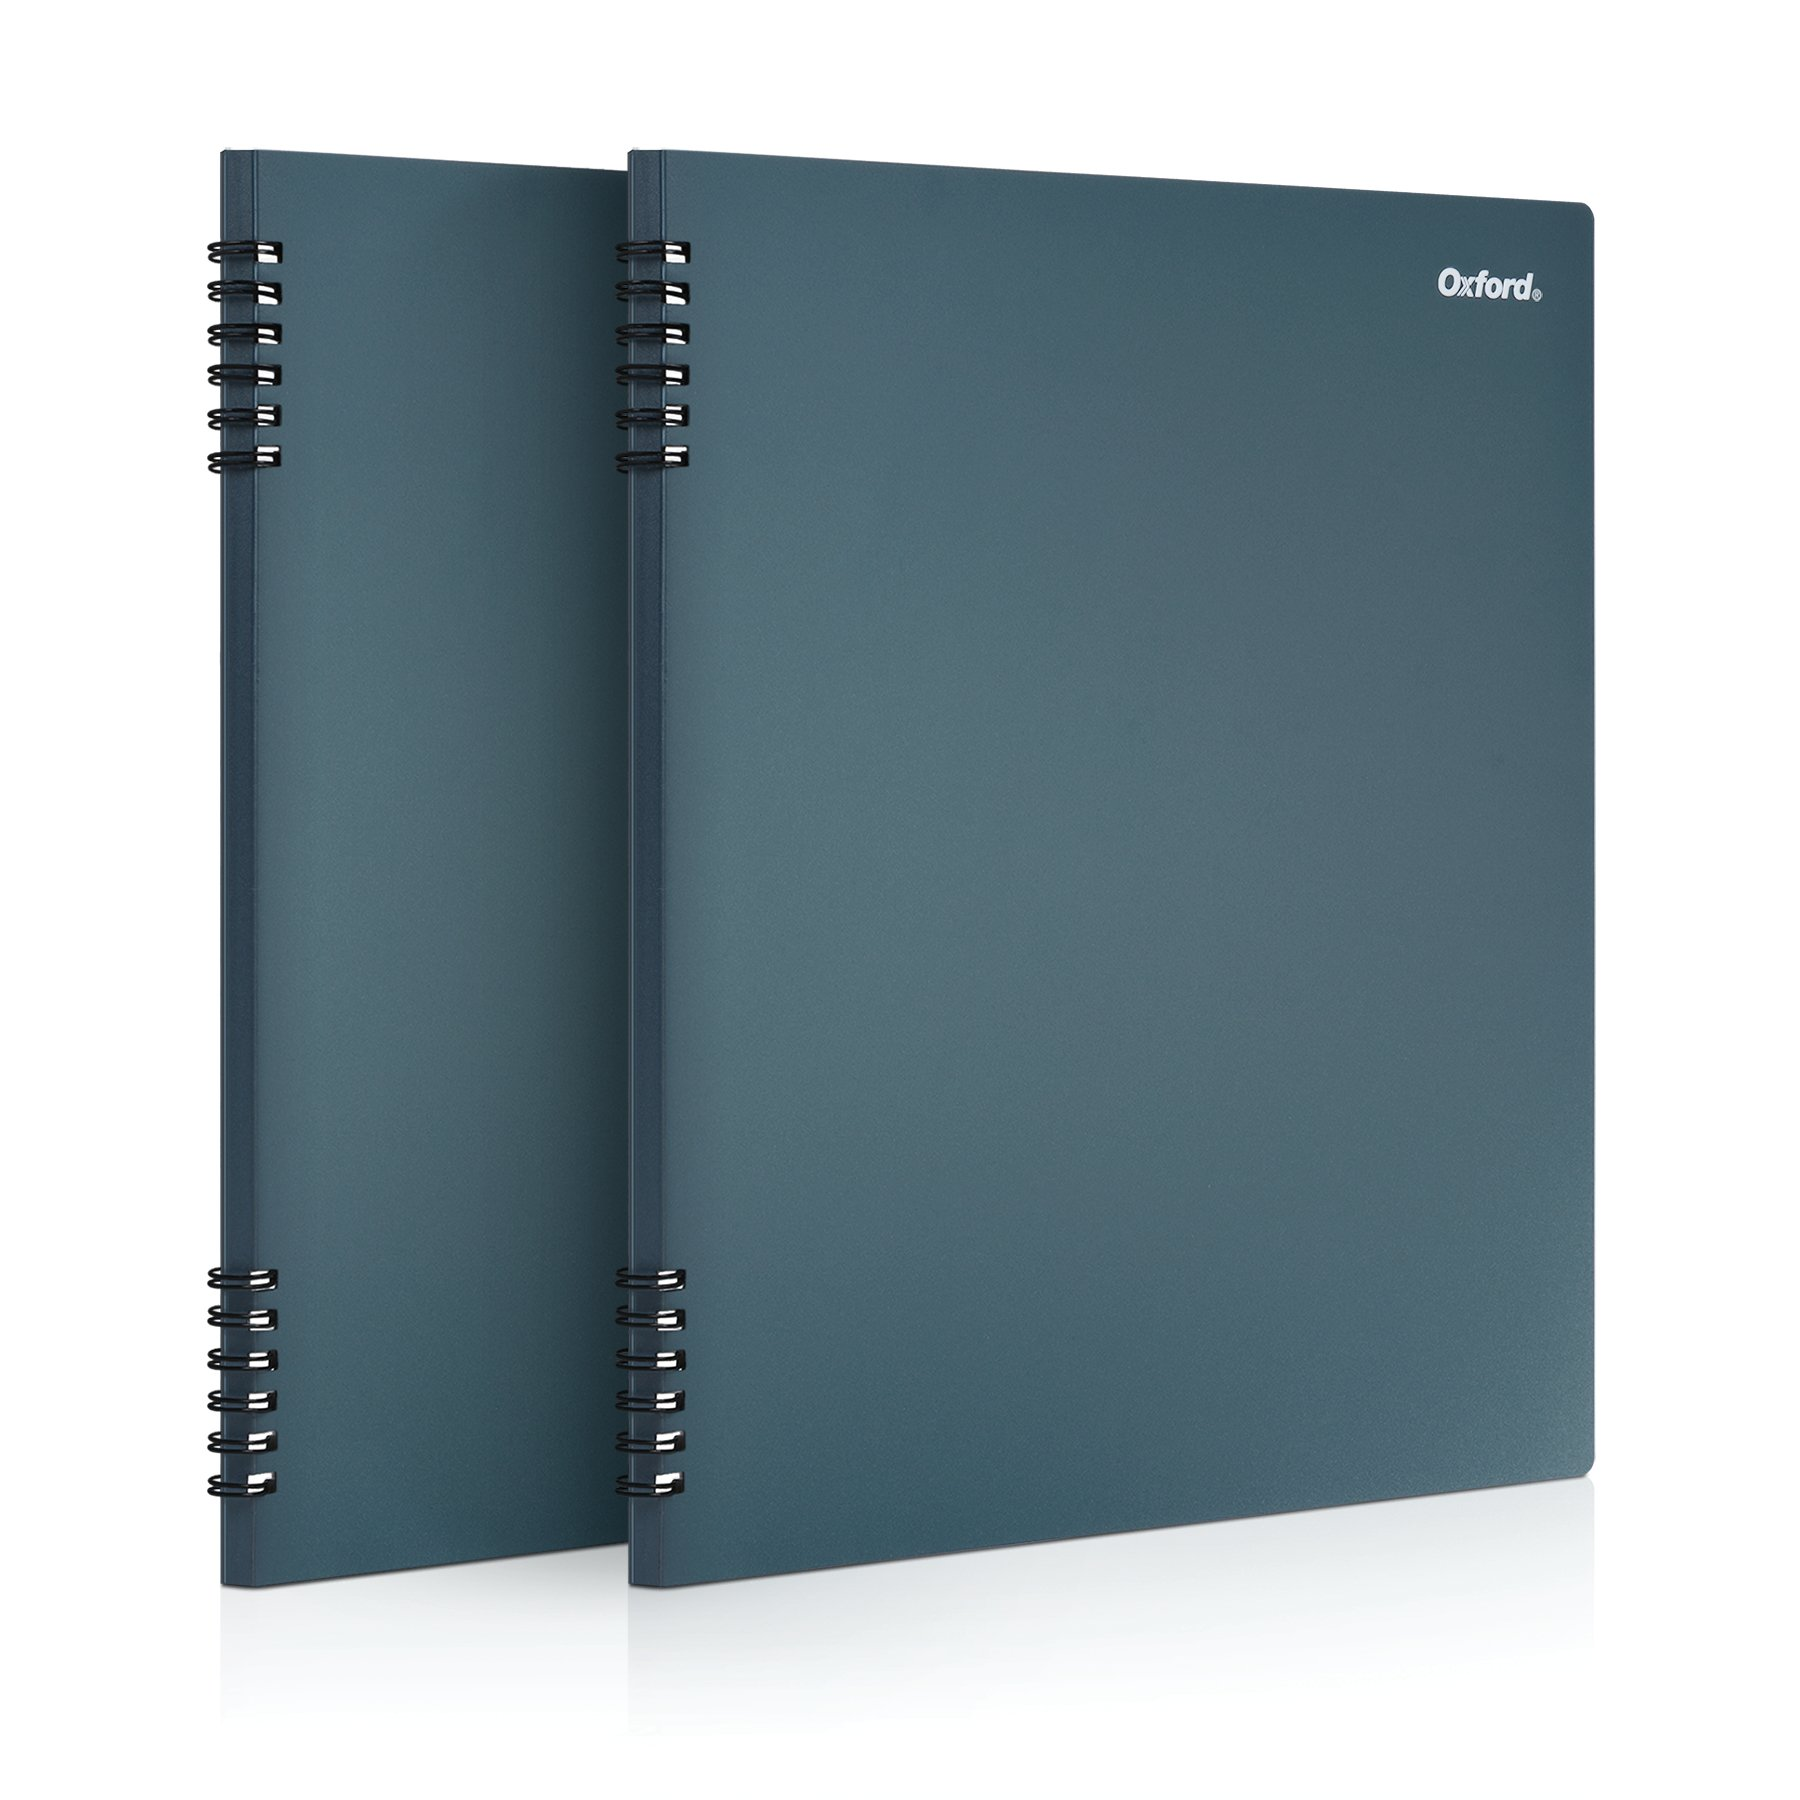 Oxford Stone Paper Notebook, 8-1/2'' x 11'', Blue Cover, 60 Sheets, 2 Pack (161646) by Oxford